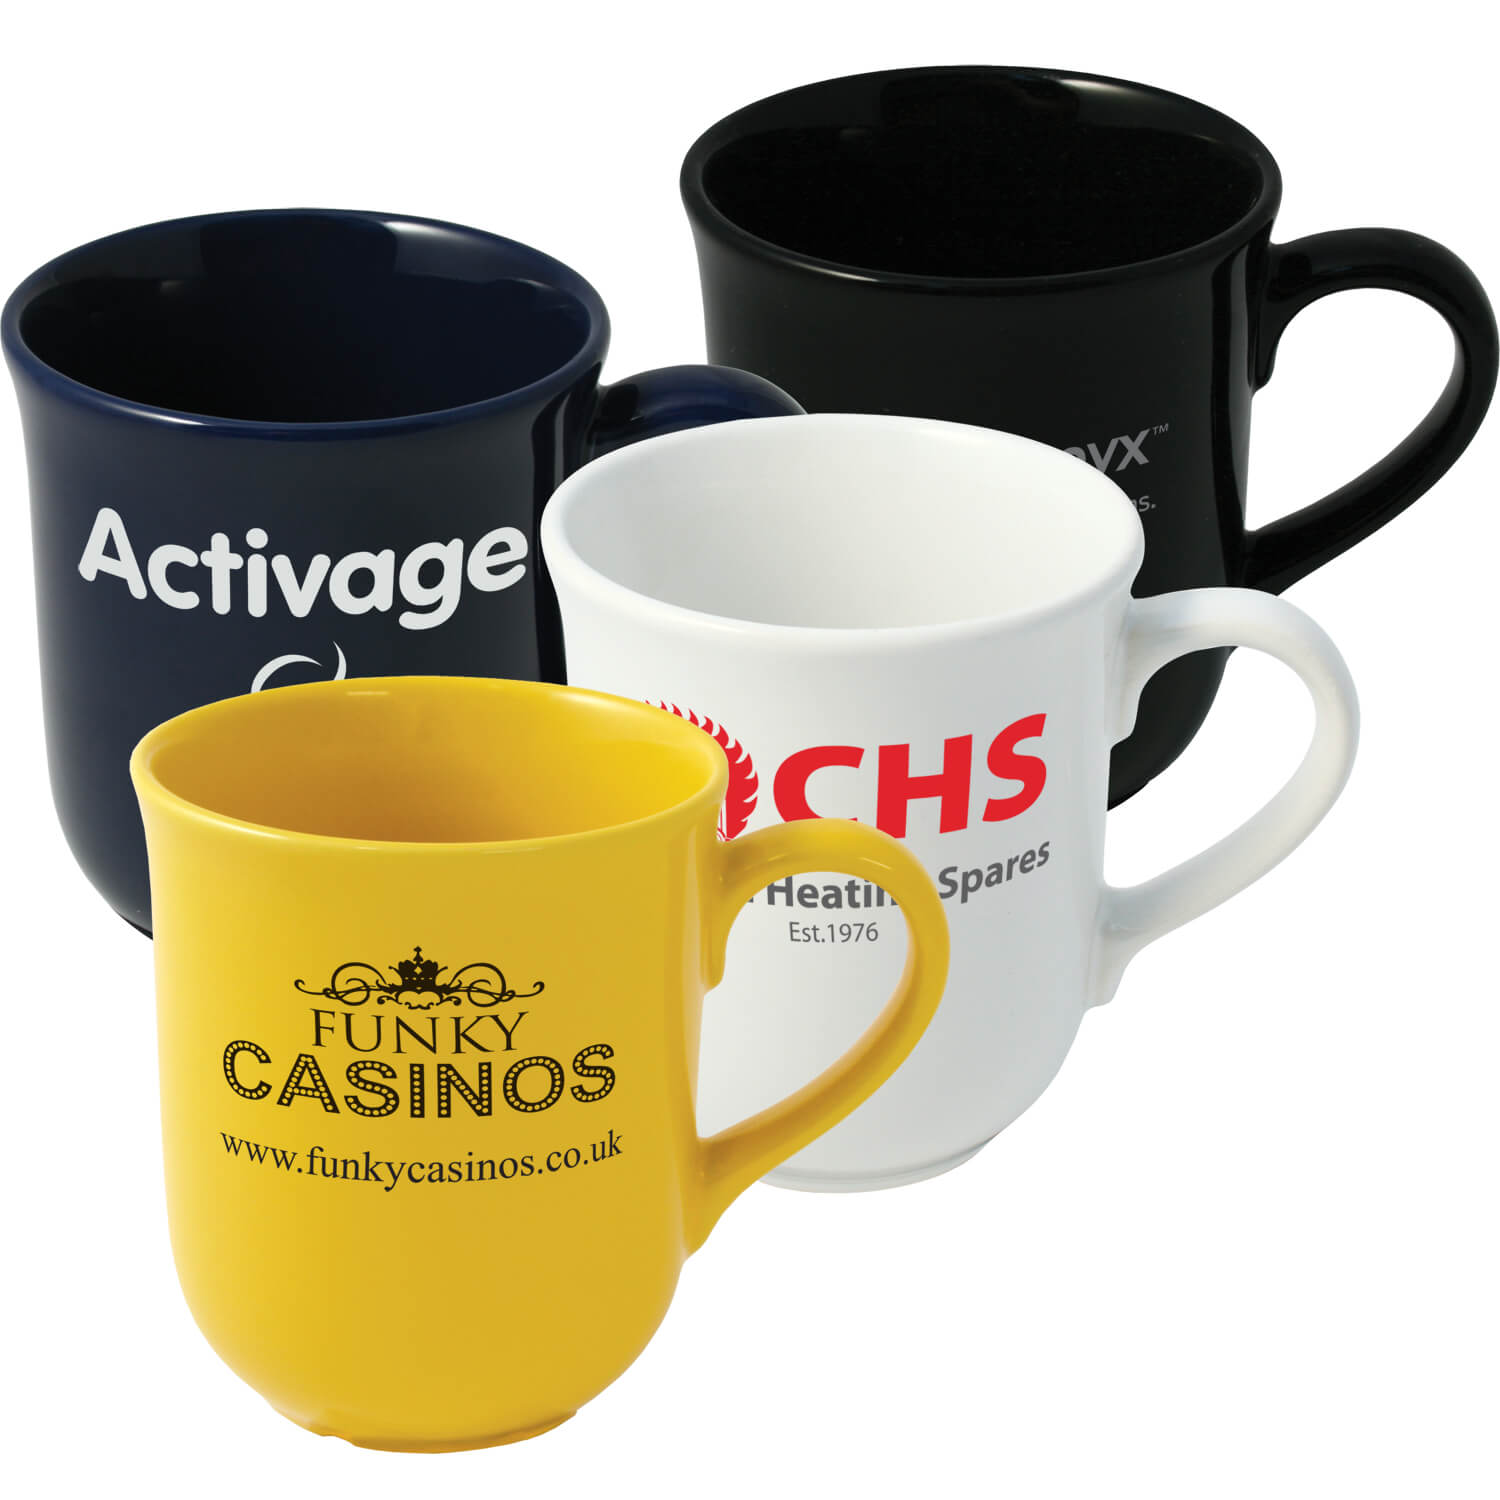 Bell Promotional Mugs